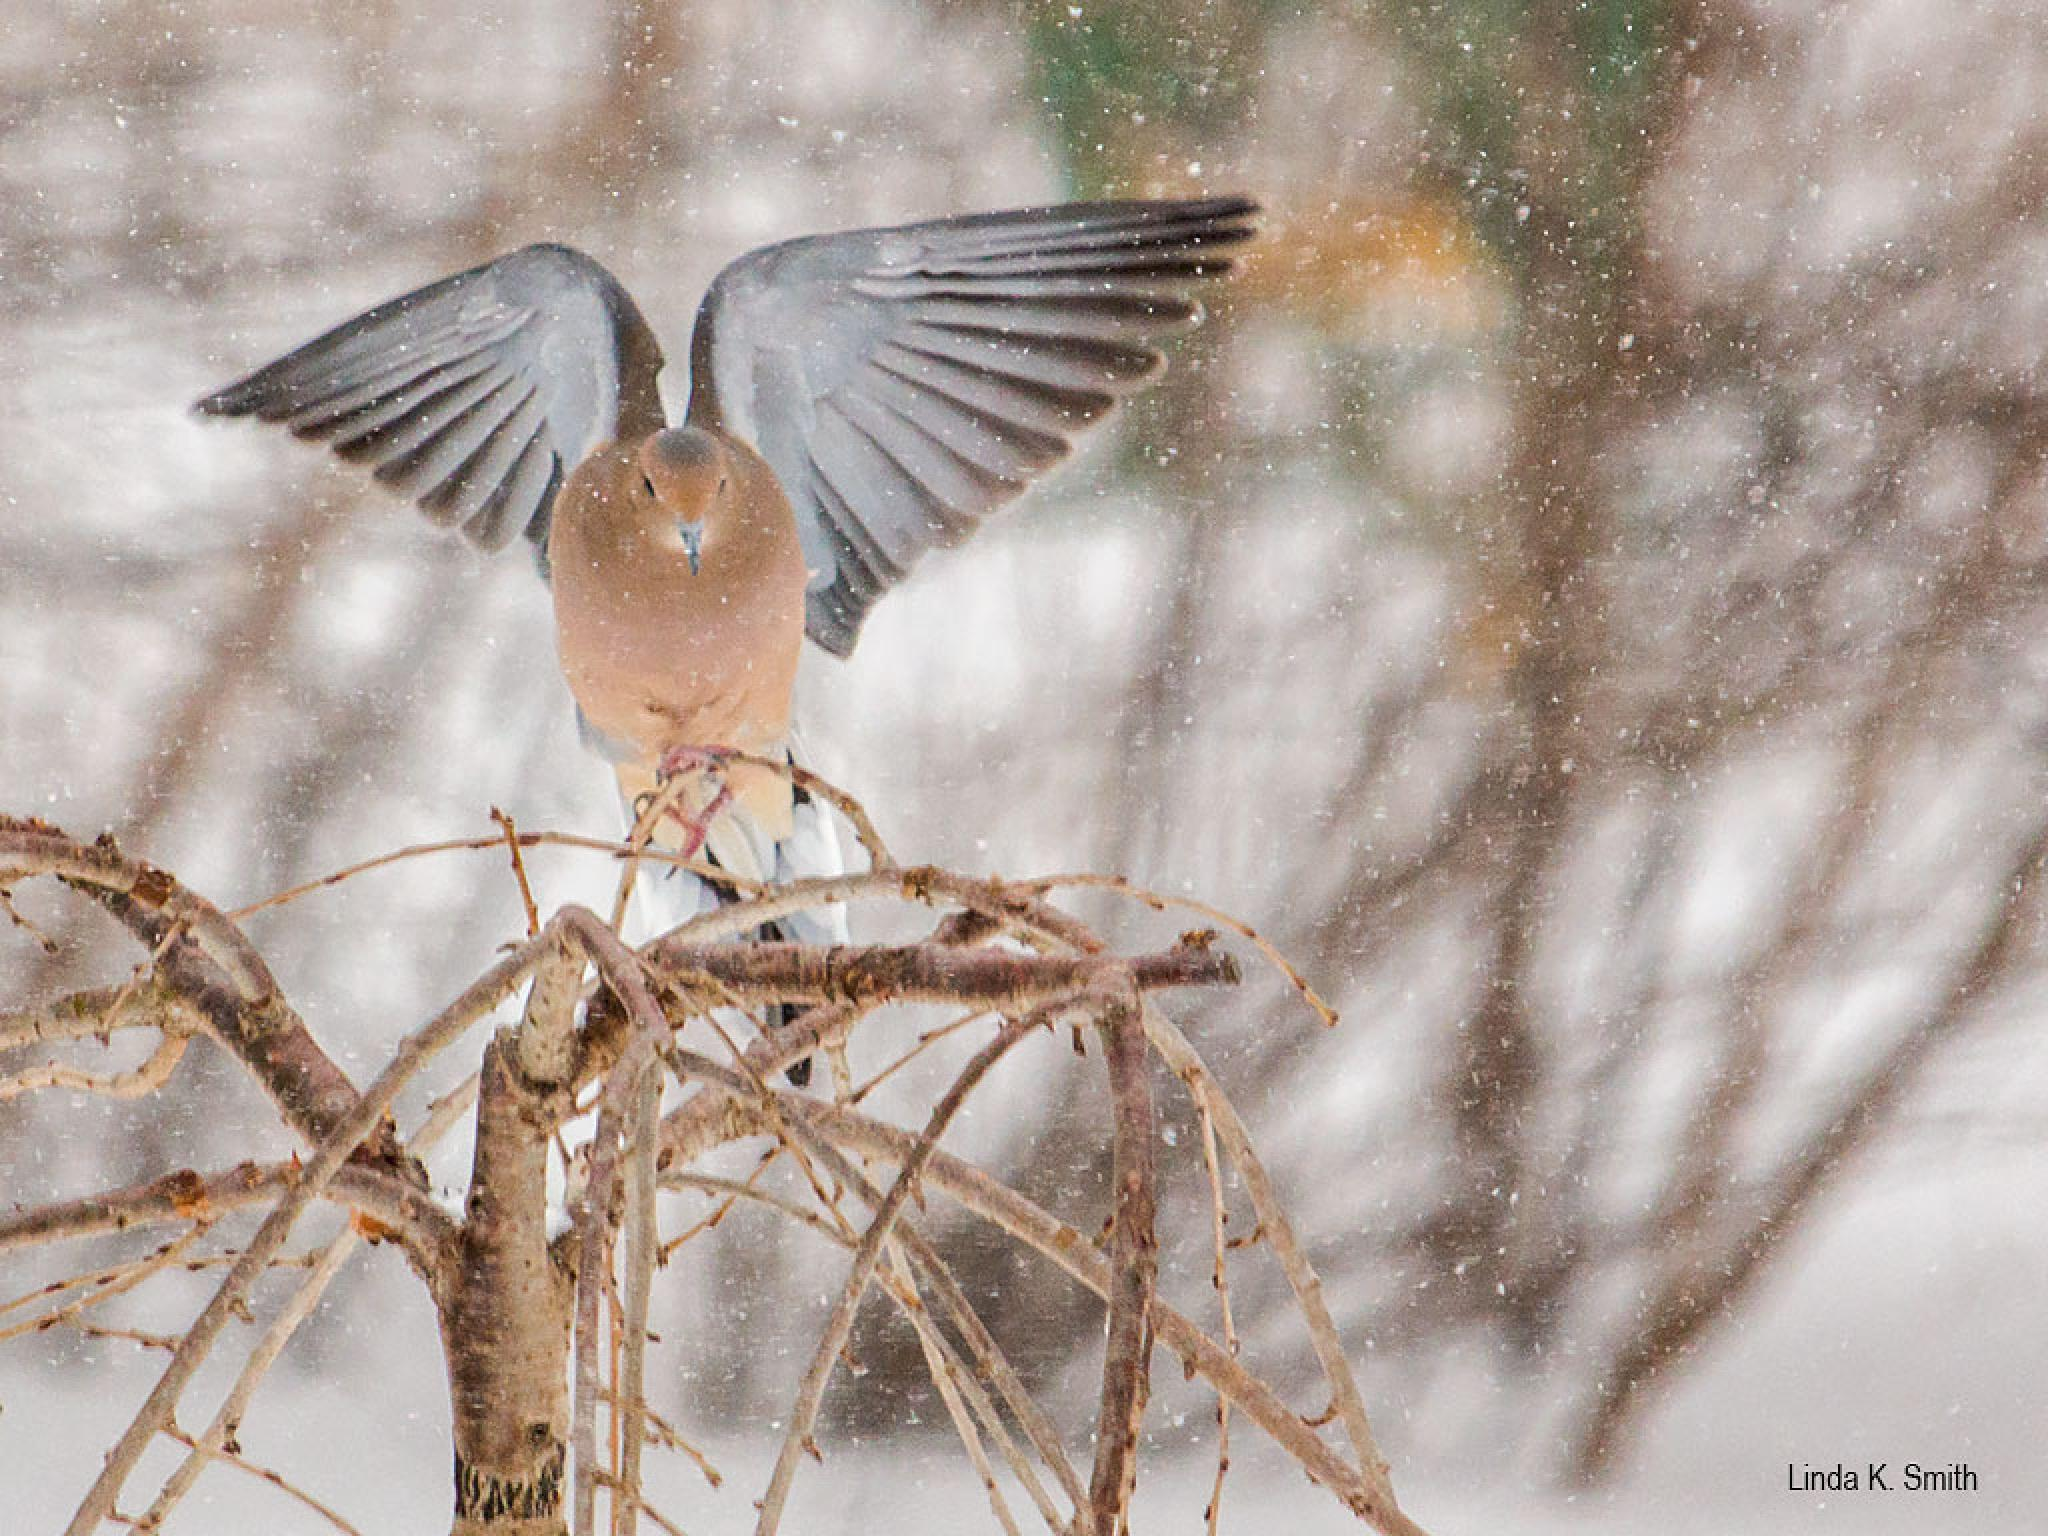 The Wings Of A Mourning Dove by linda.smith.754365